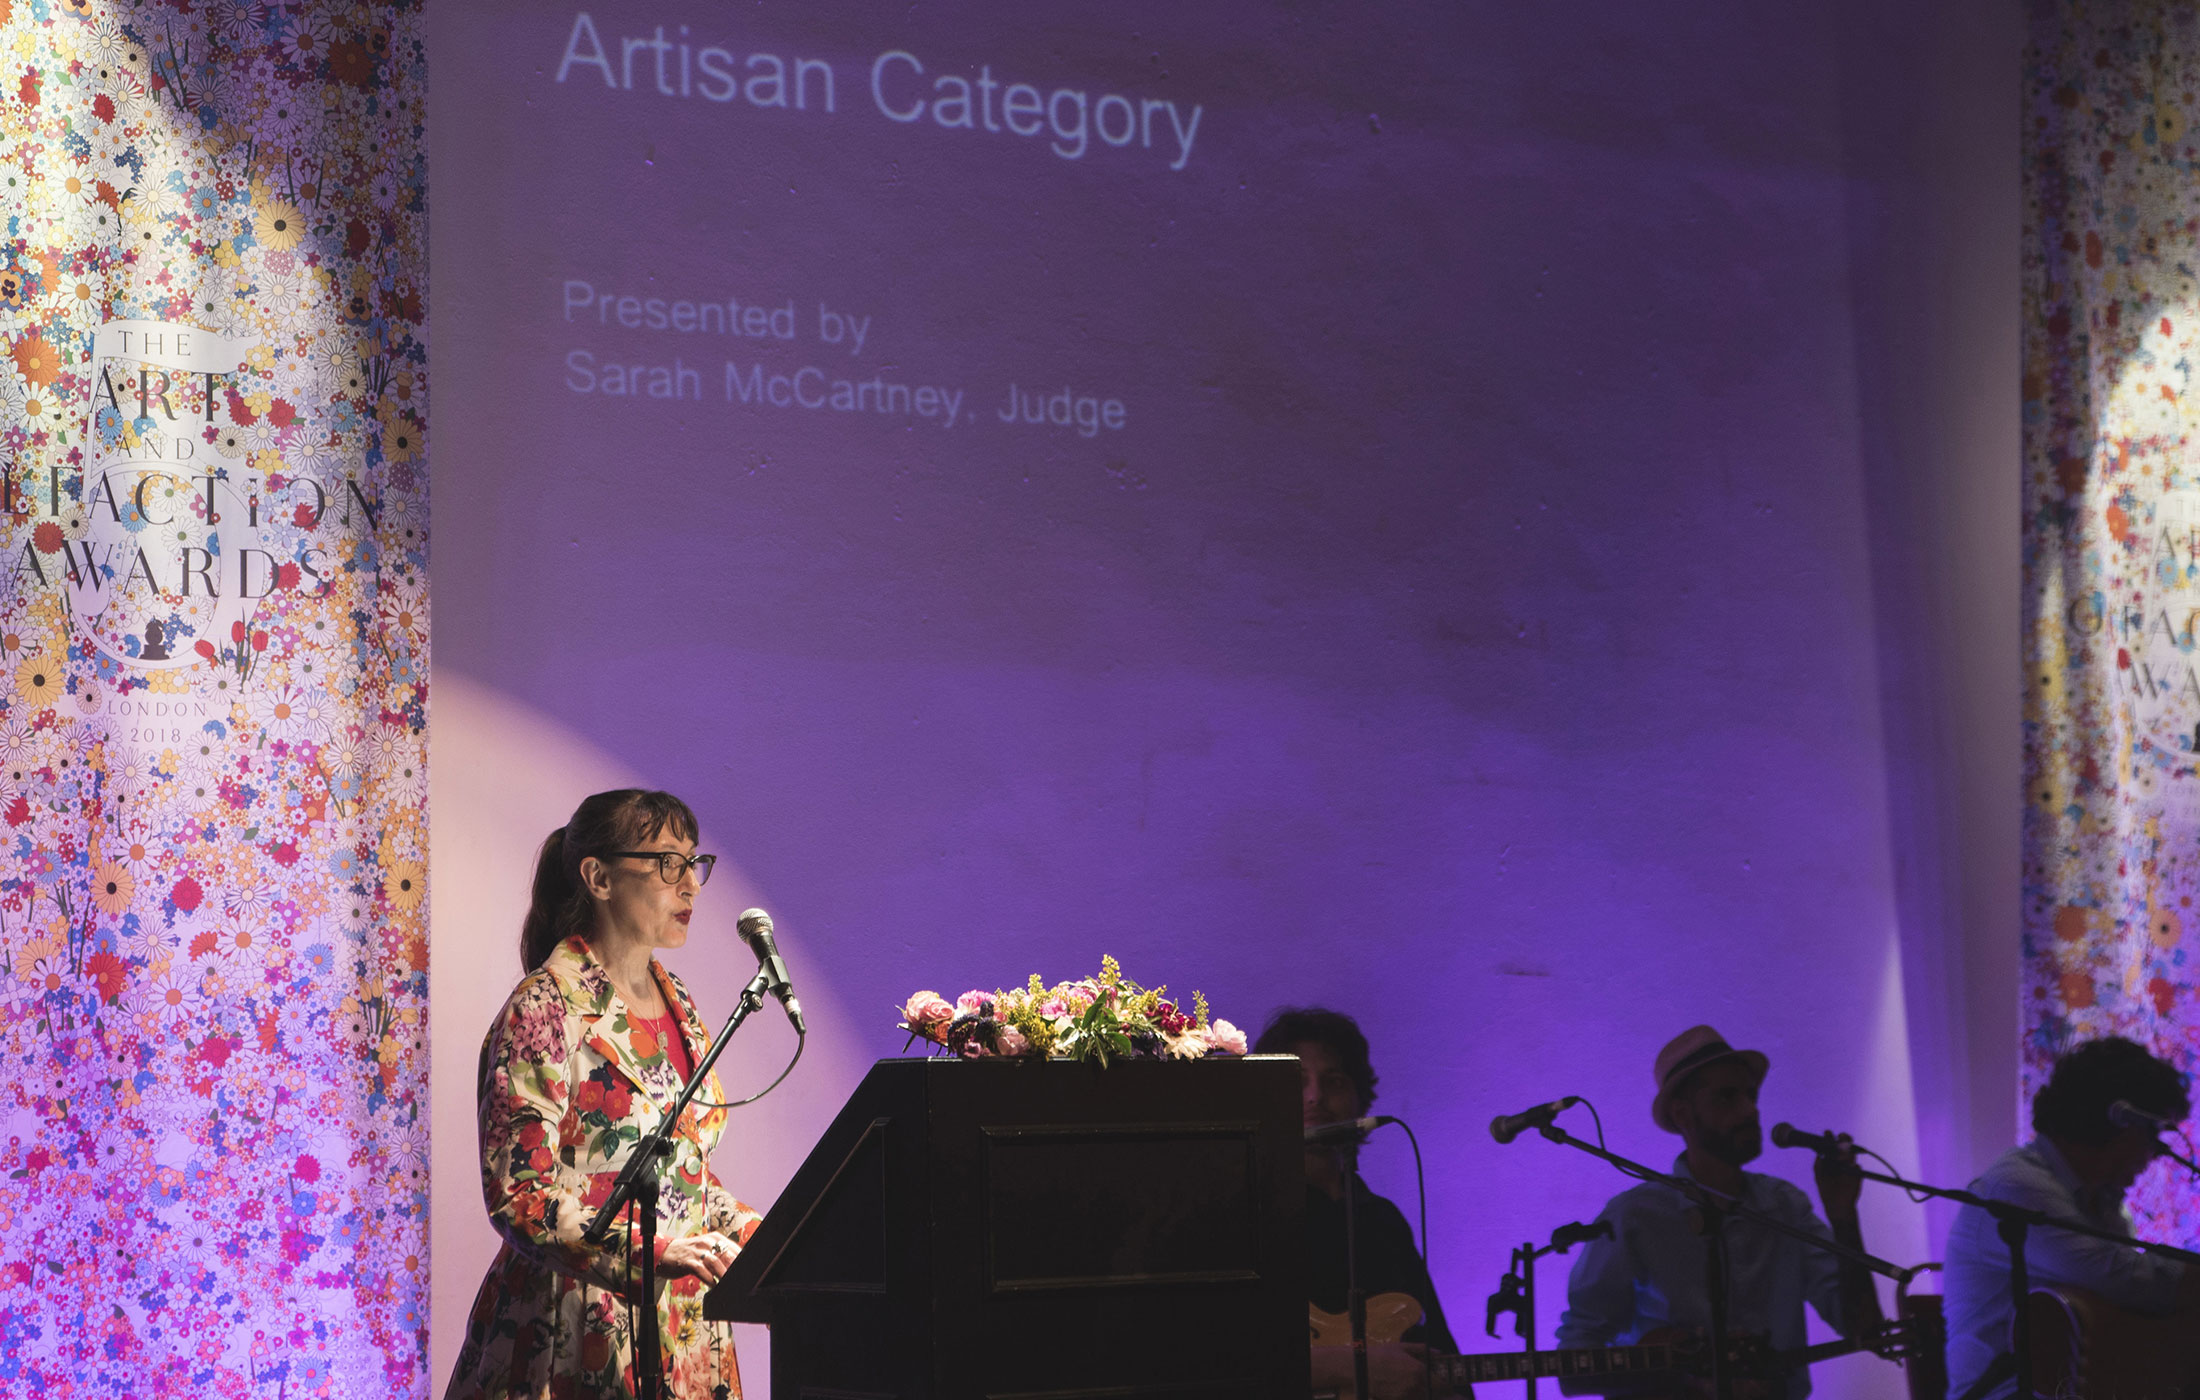 Sarah McCartney at The Art and Olfaction Awards, Photo by Marina Chichi